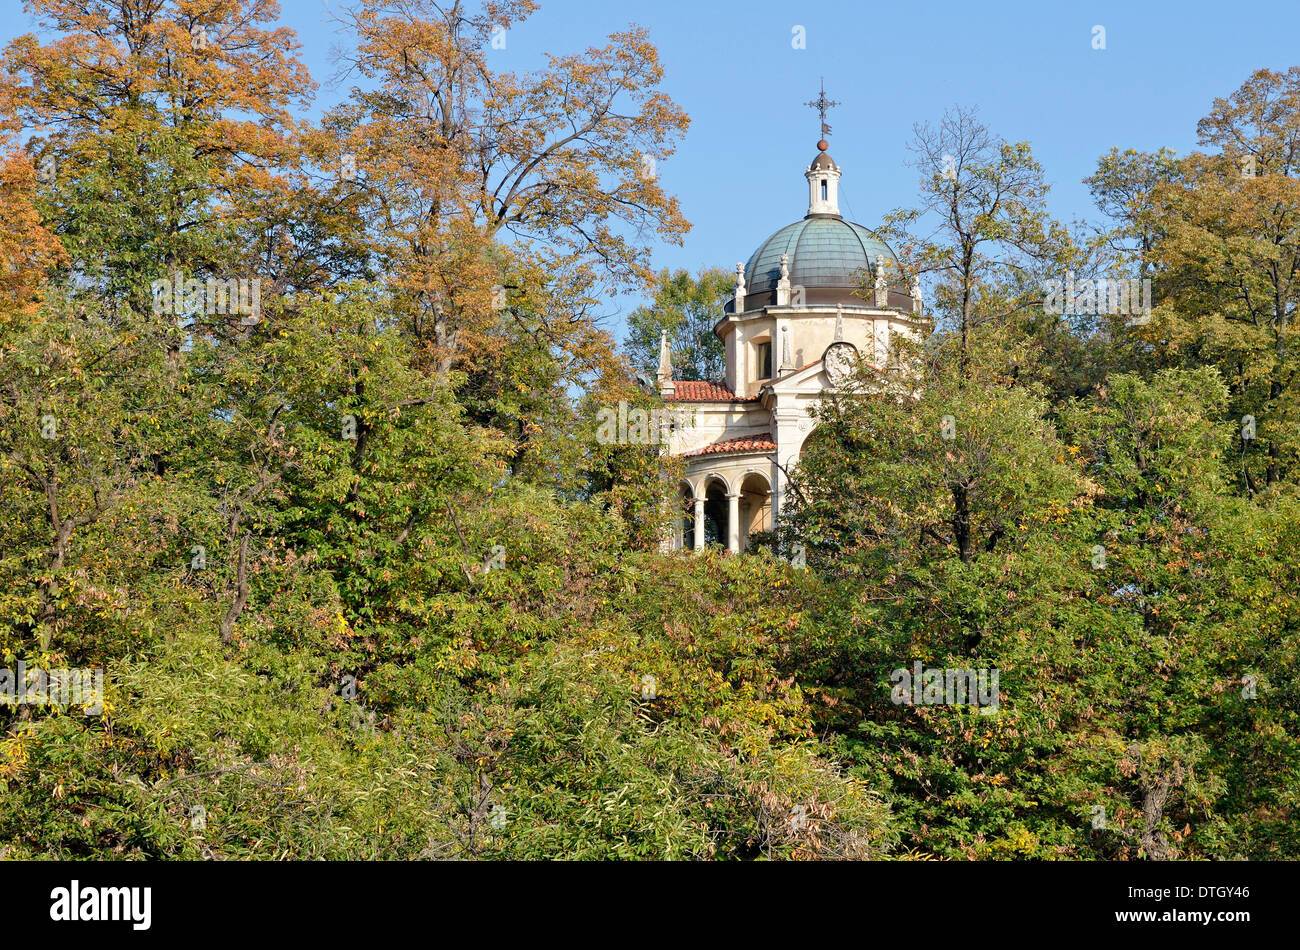 Chapel IV, historic pilgrimage route to the Sanctuary of Santa Maria del Monte on the Sacro Monte di Varese or Sacred Mount of - Stock Image